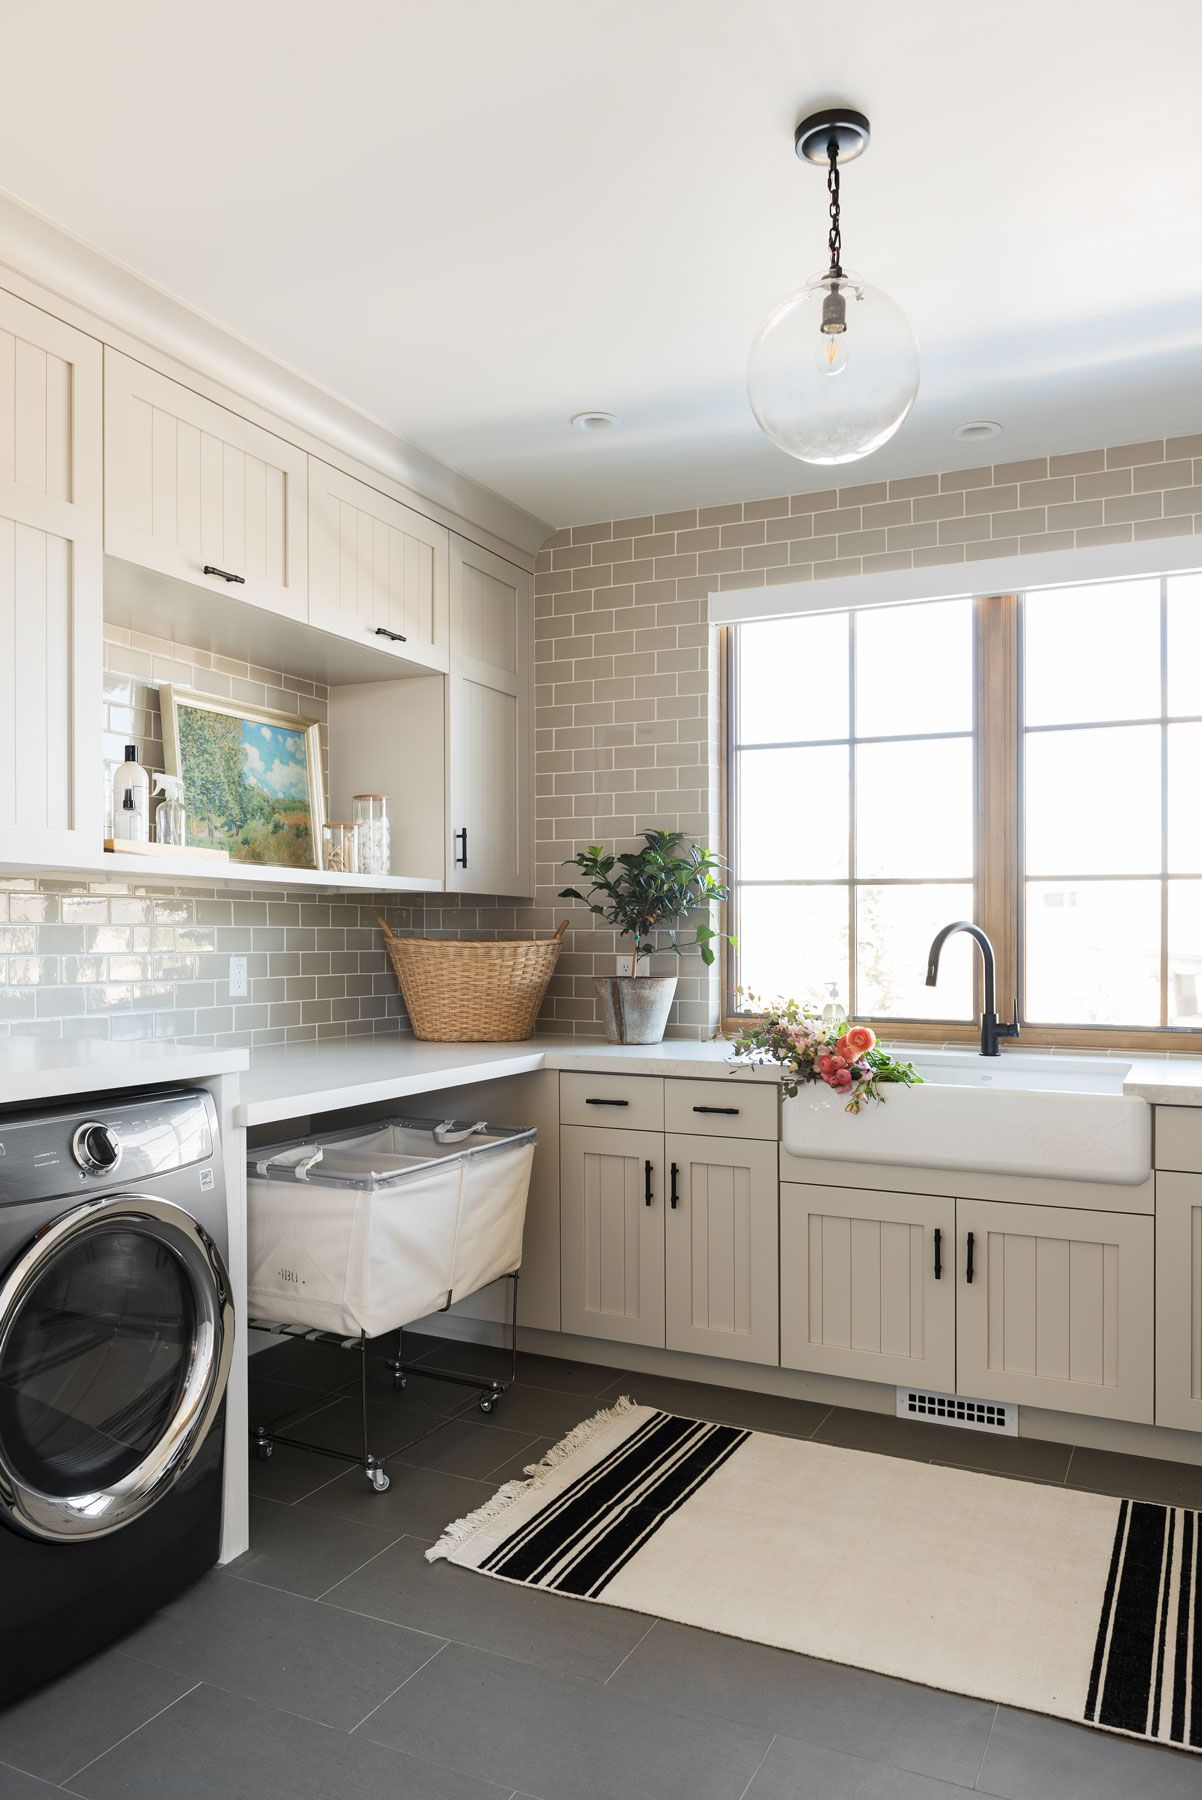 29 Beautiful Laundry Rooms - Decorating Ideas for Laundry Rooms